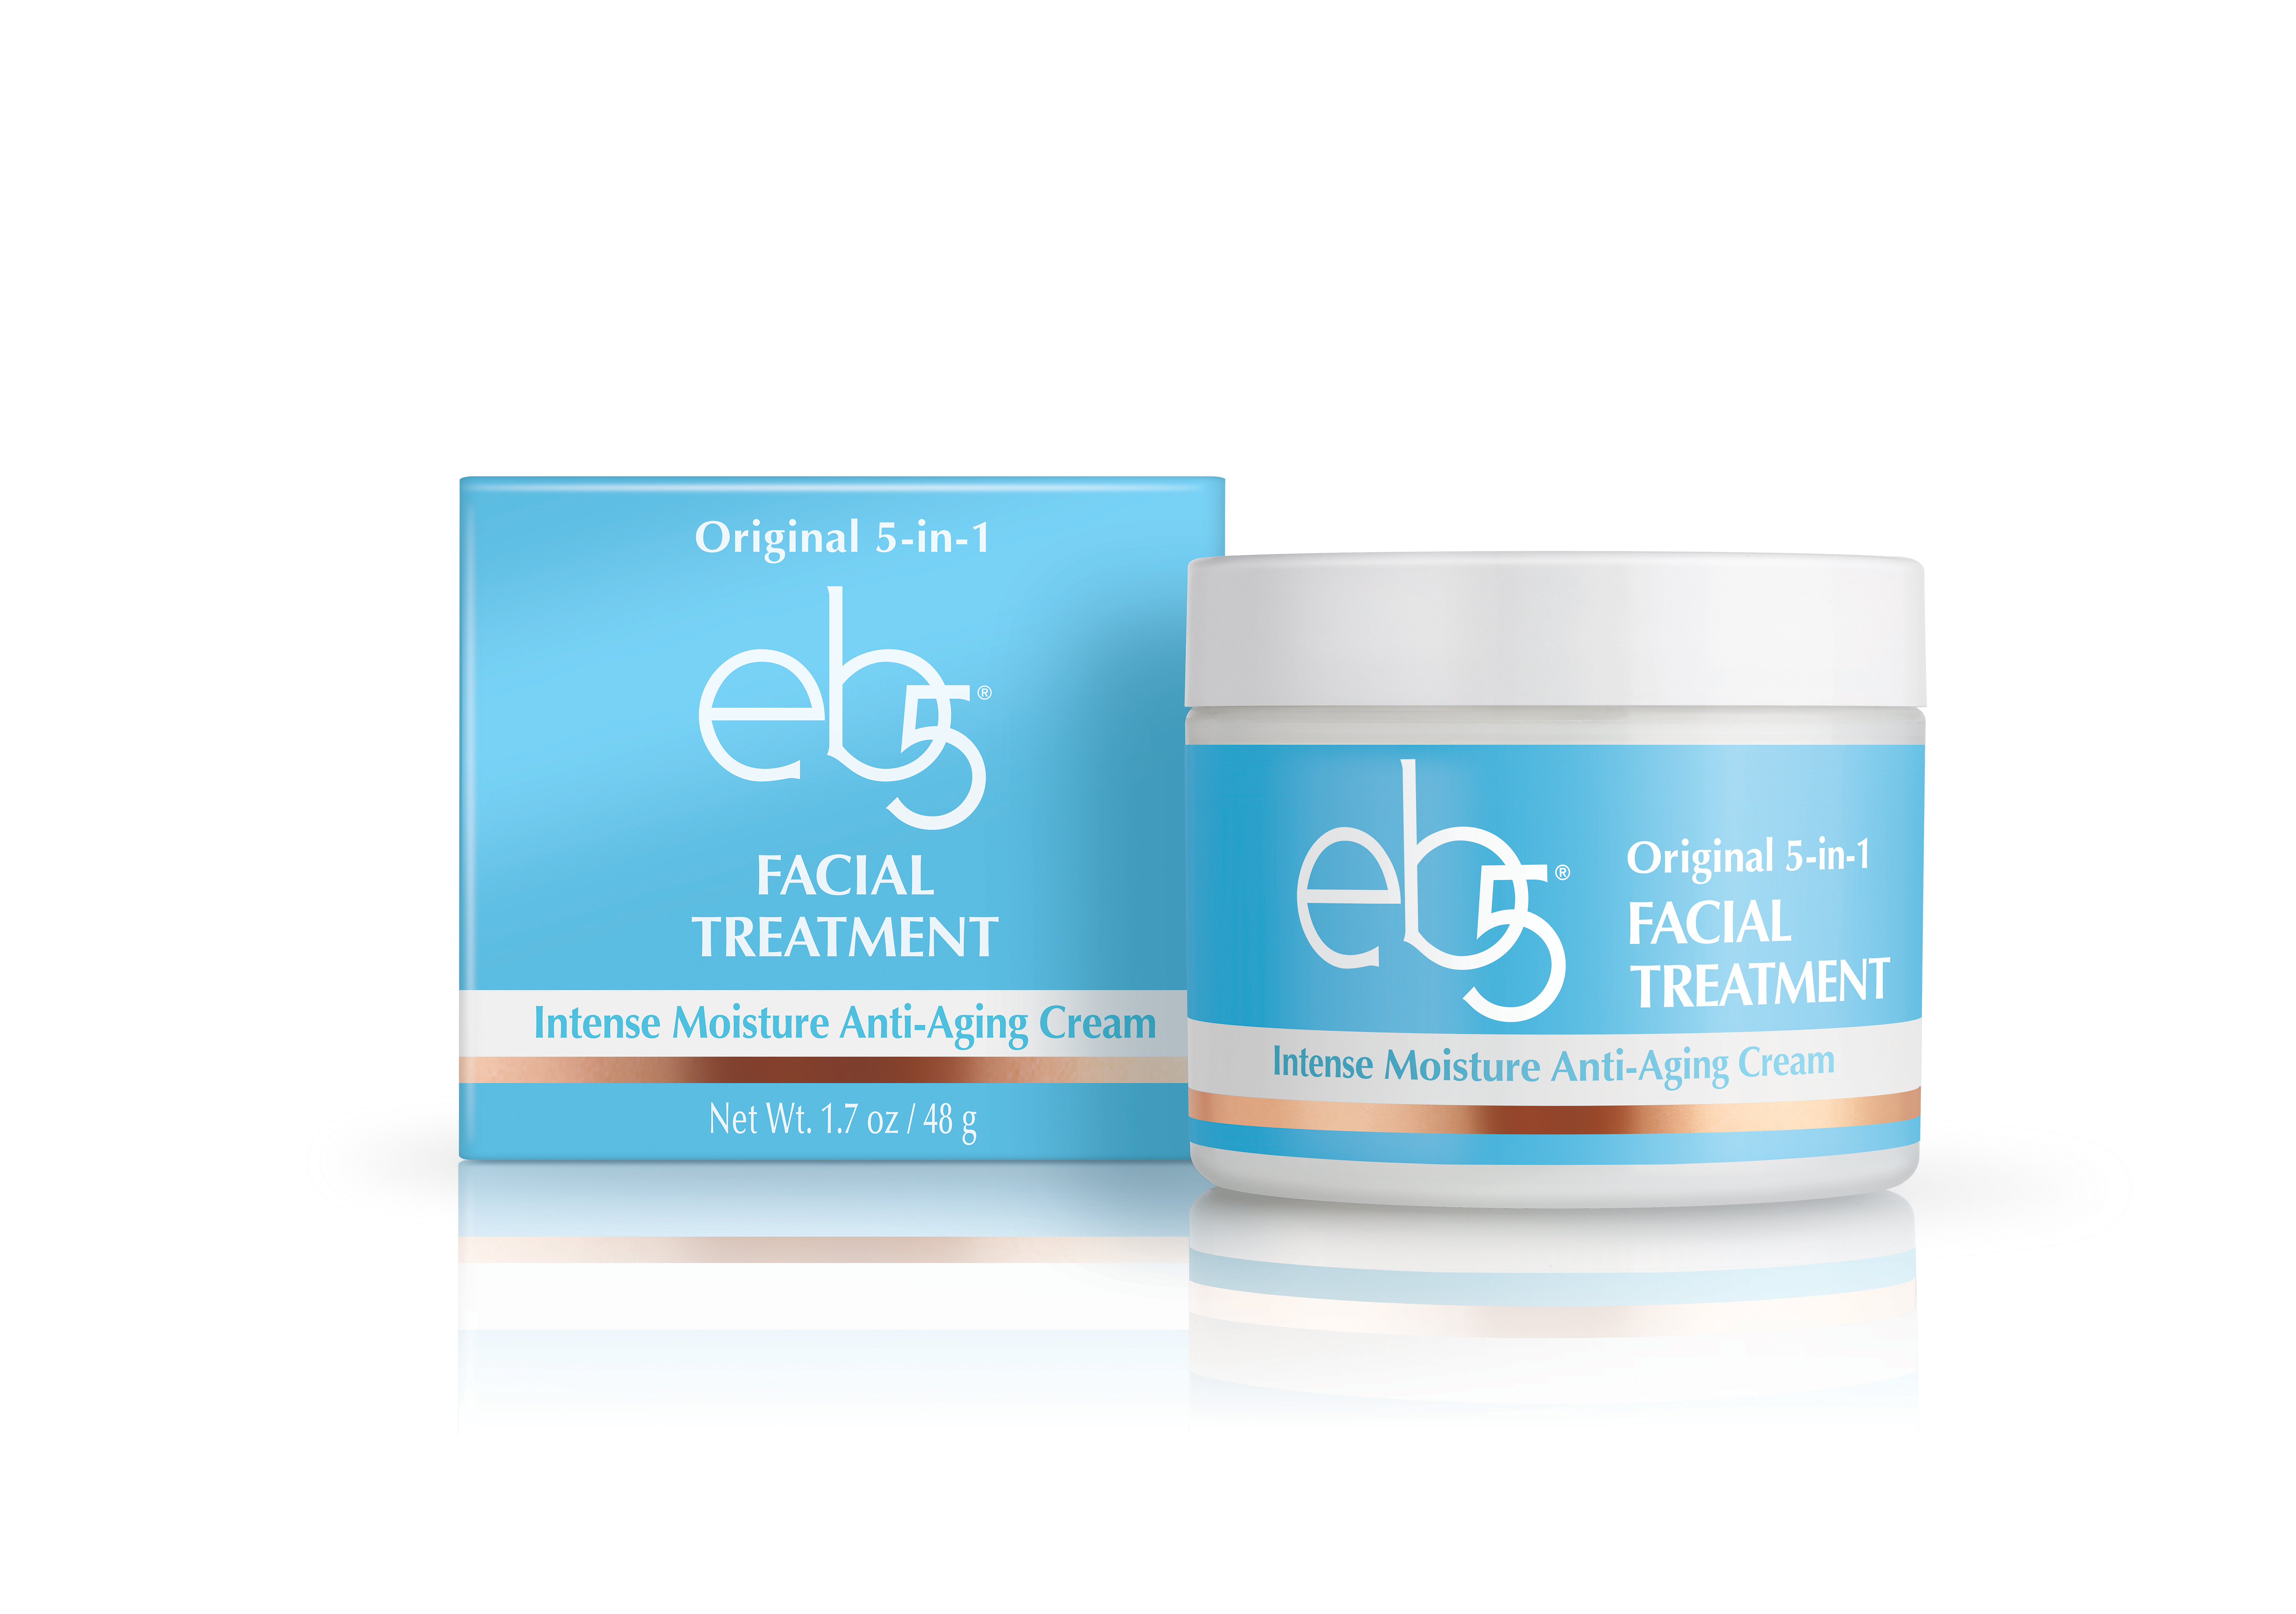 eb5 - Original 5-in-1 Facial Treatment Intense Moisture Anti-Aging Cream - New Formula & New Packaging (Photo: Business Wire)